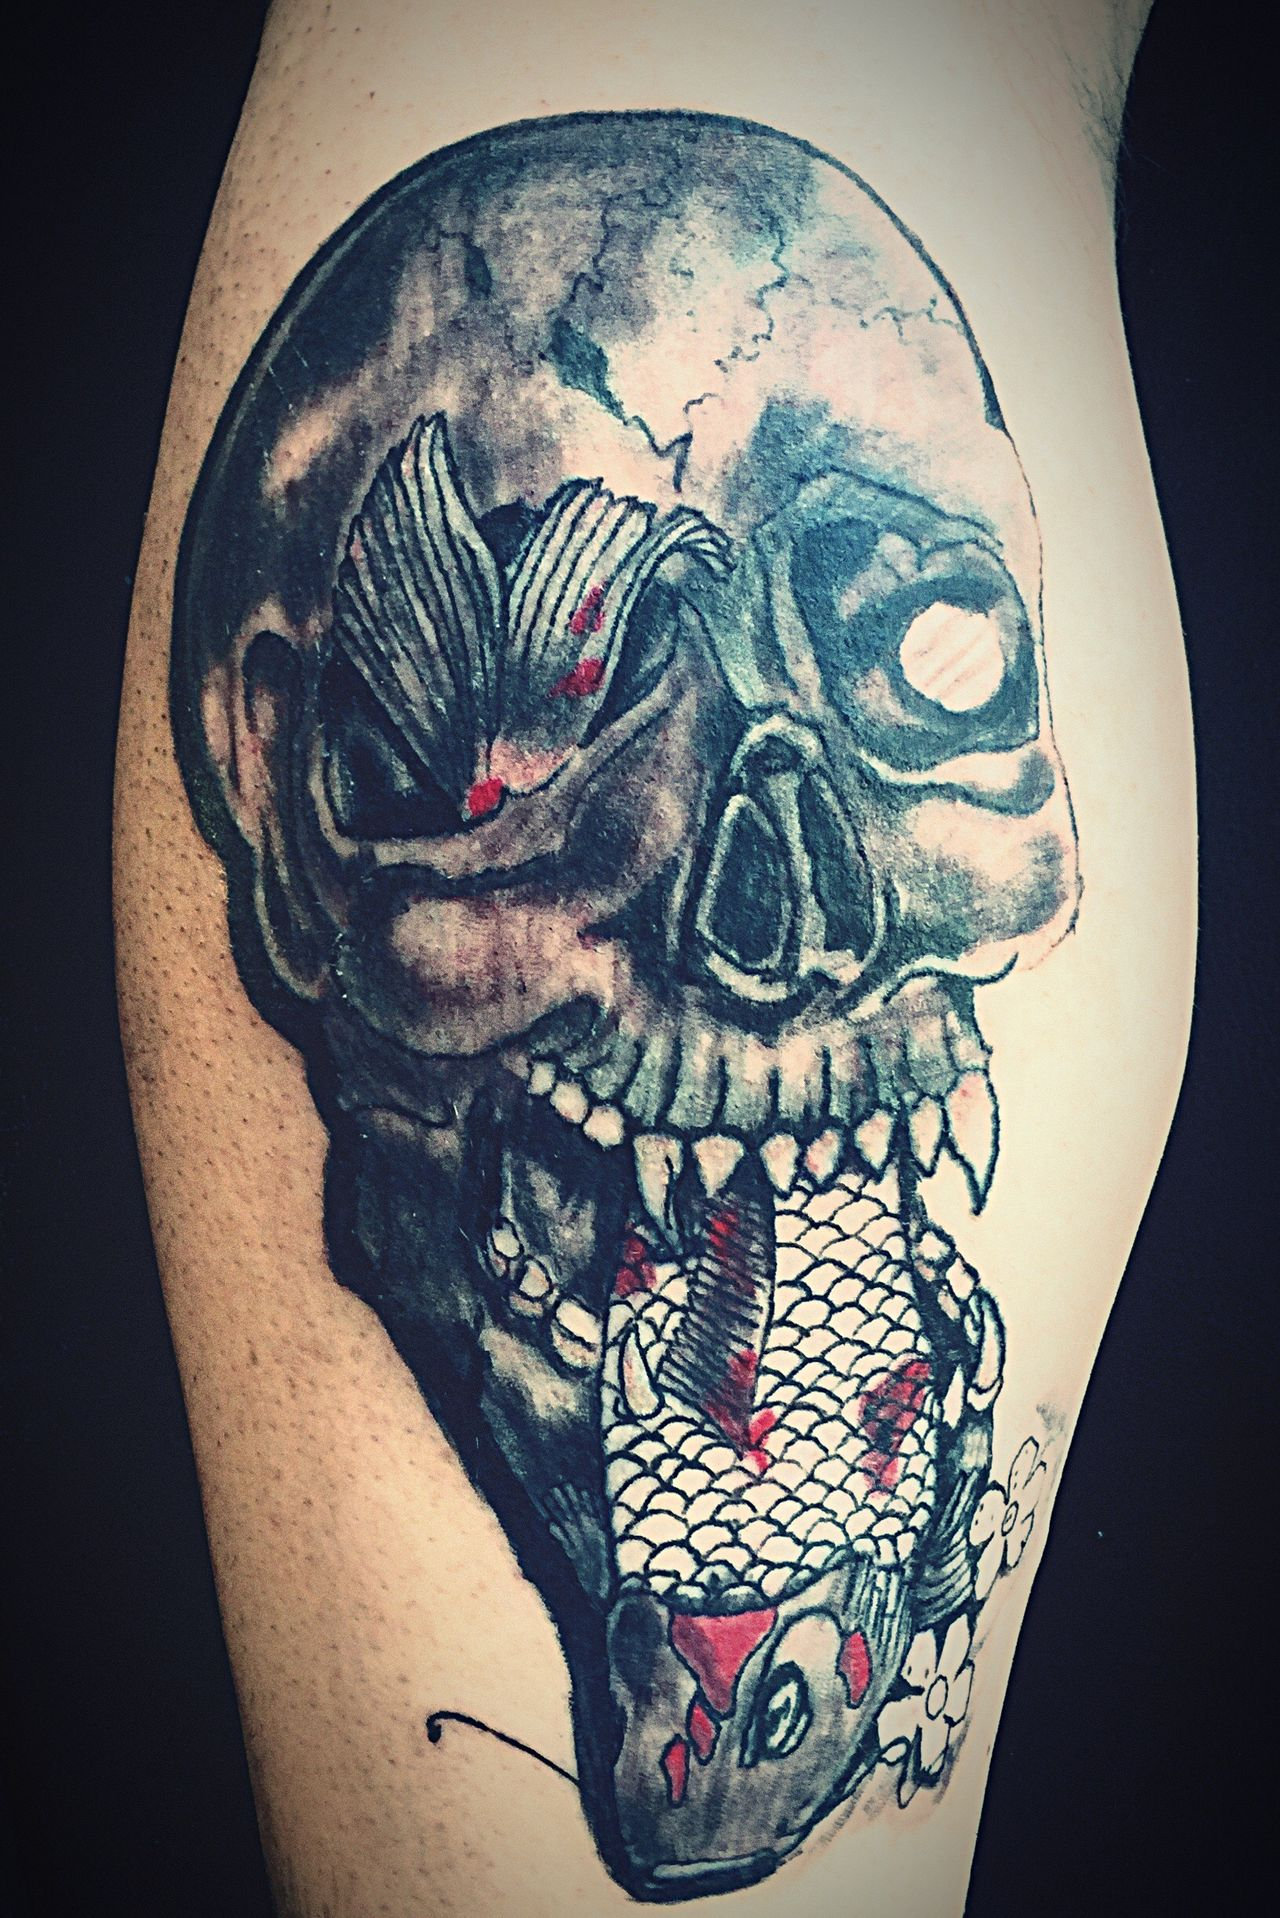 New Tattoo! By Matthew @ Dark Visions Inc Www.d4rkvision.com Dark Art Forward The Revolution 23 Check This Out Book Online Today